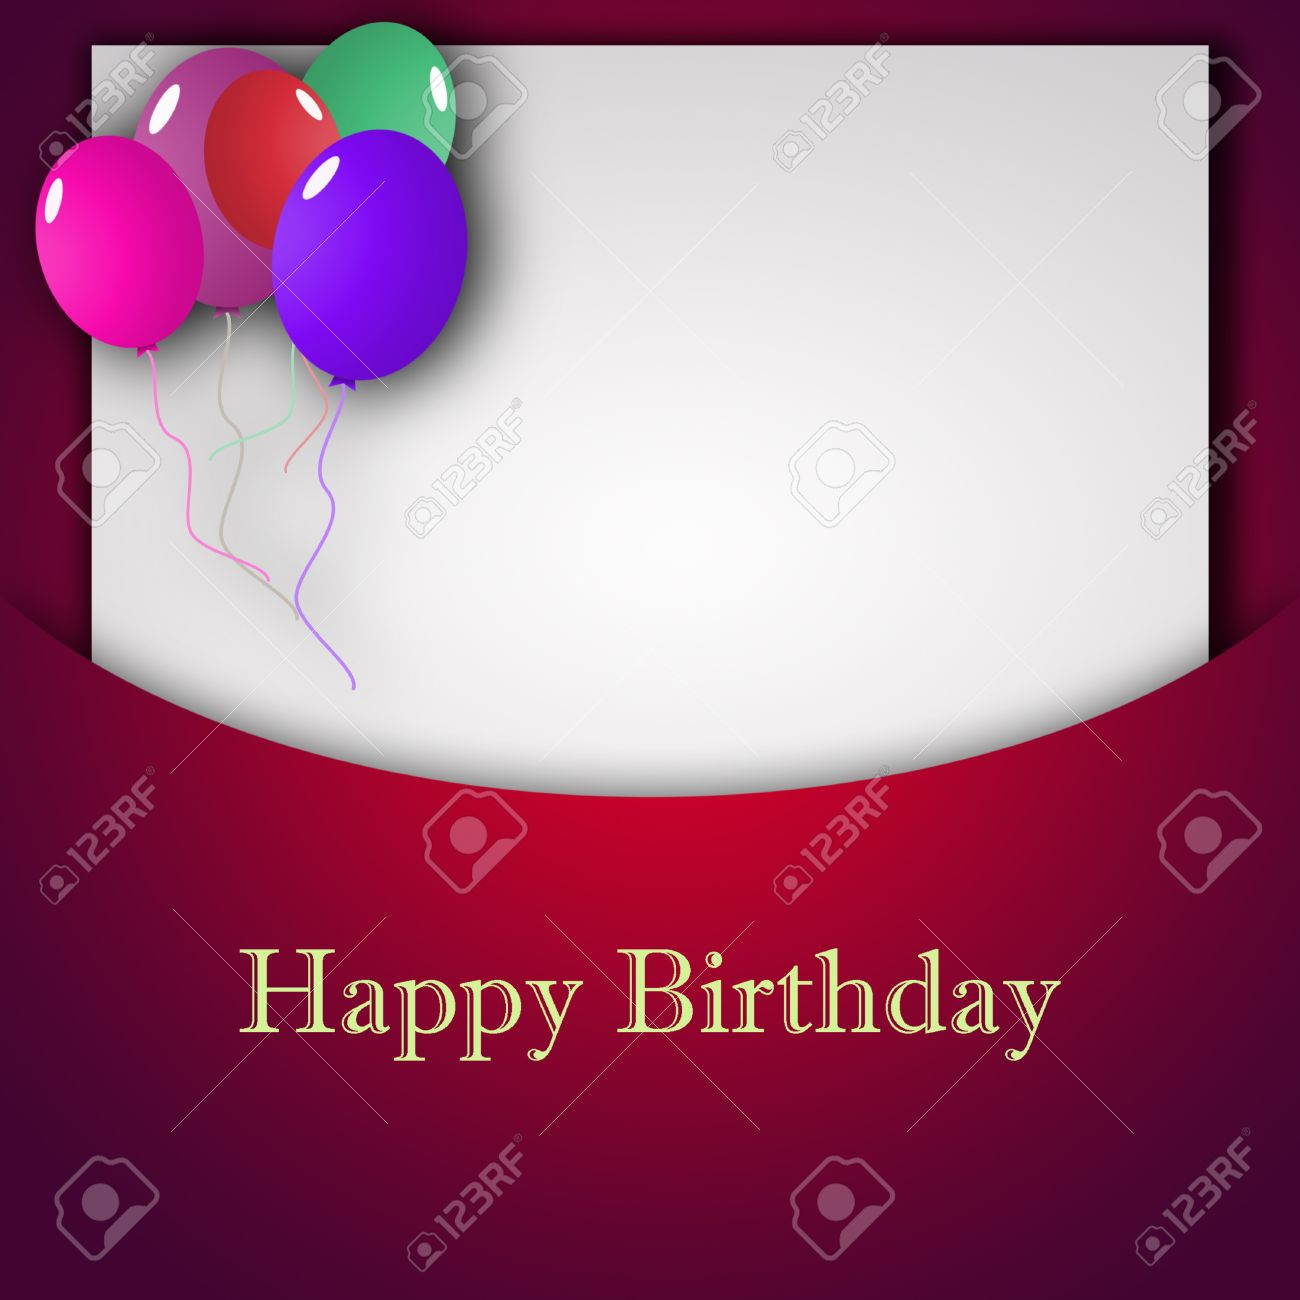 Template For Happy Birthday Greeting Card With Place For Text ...